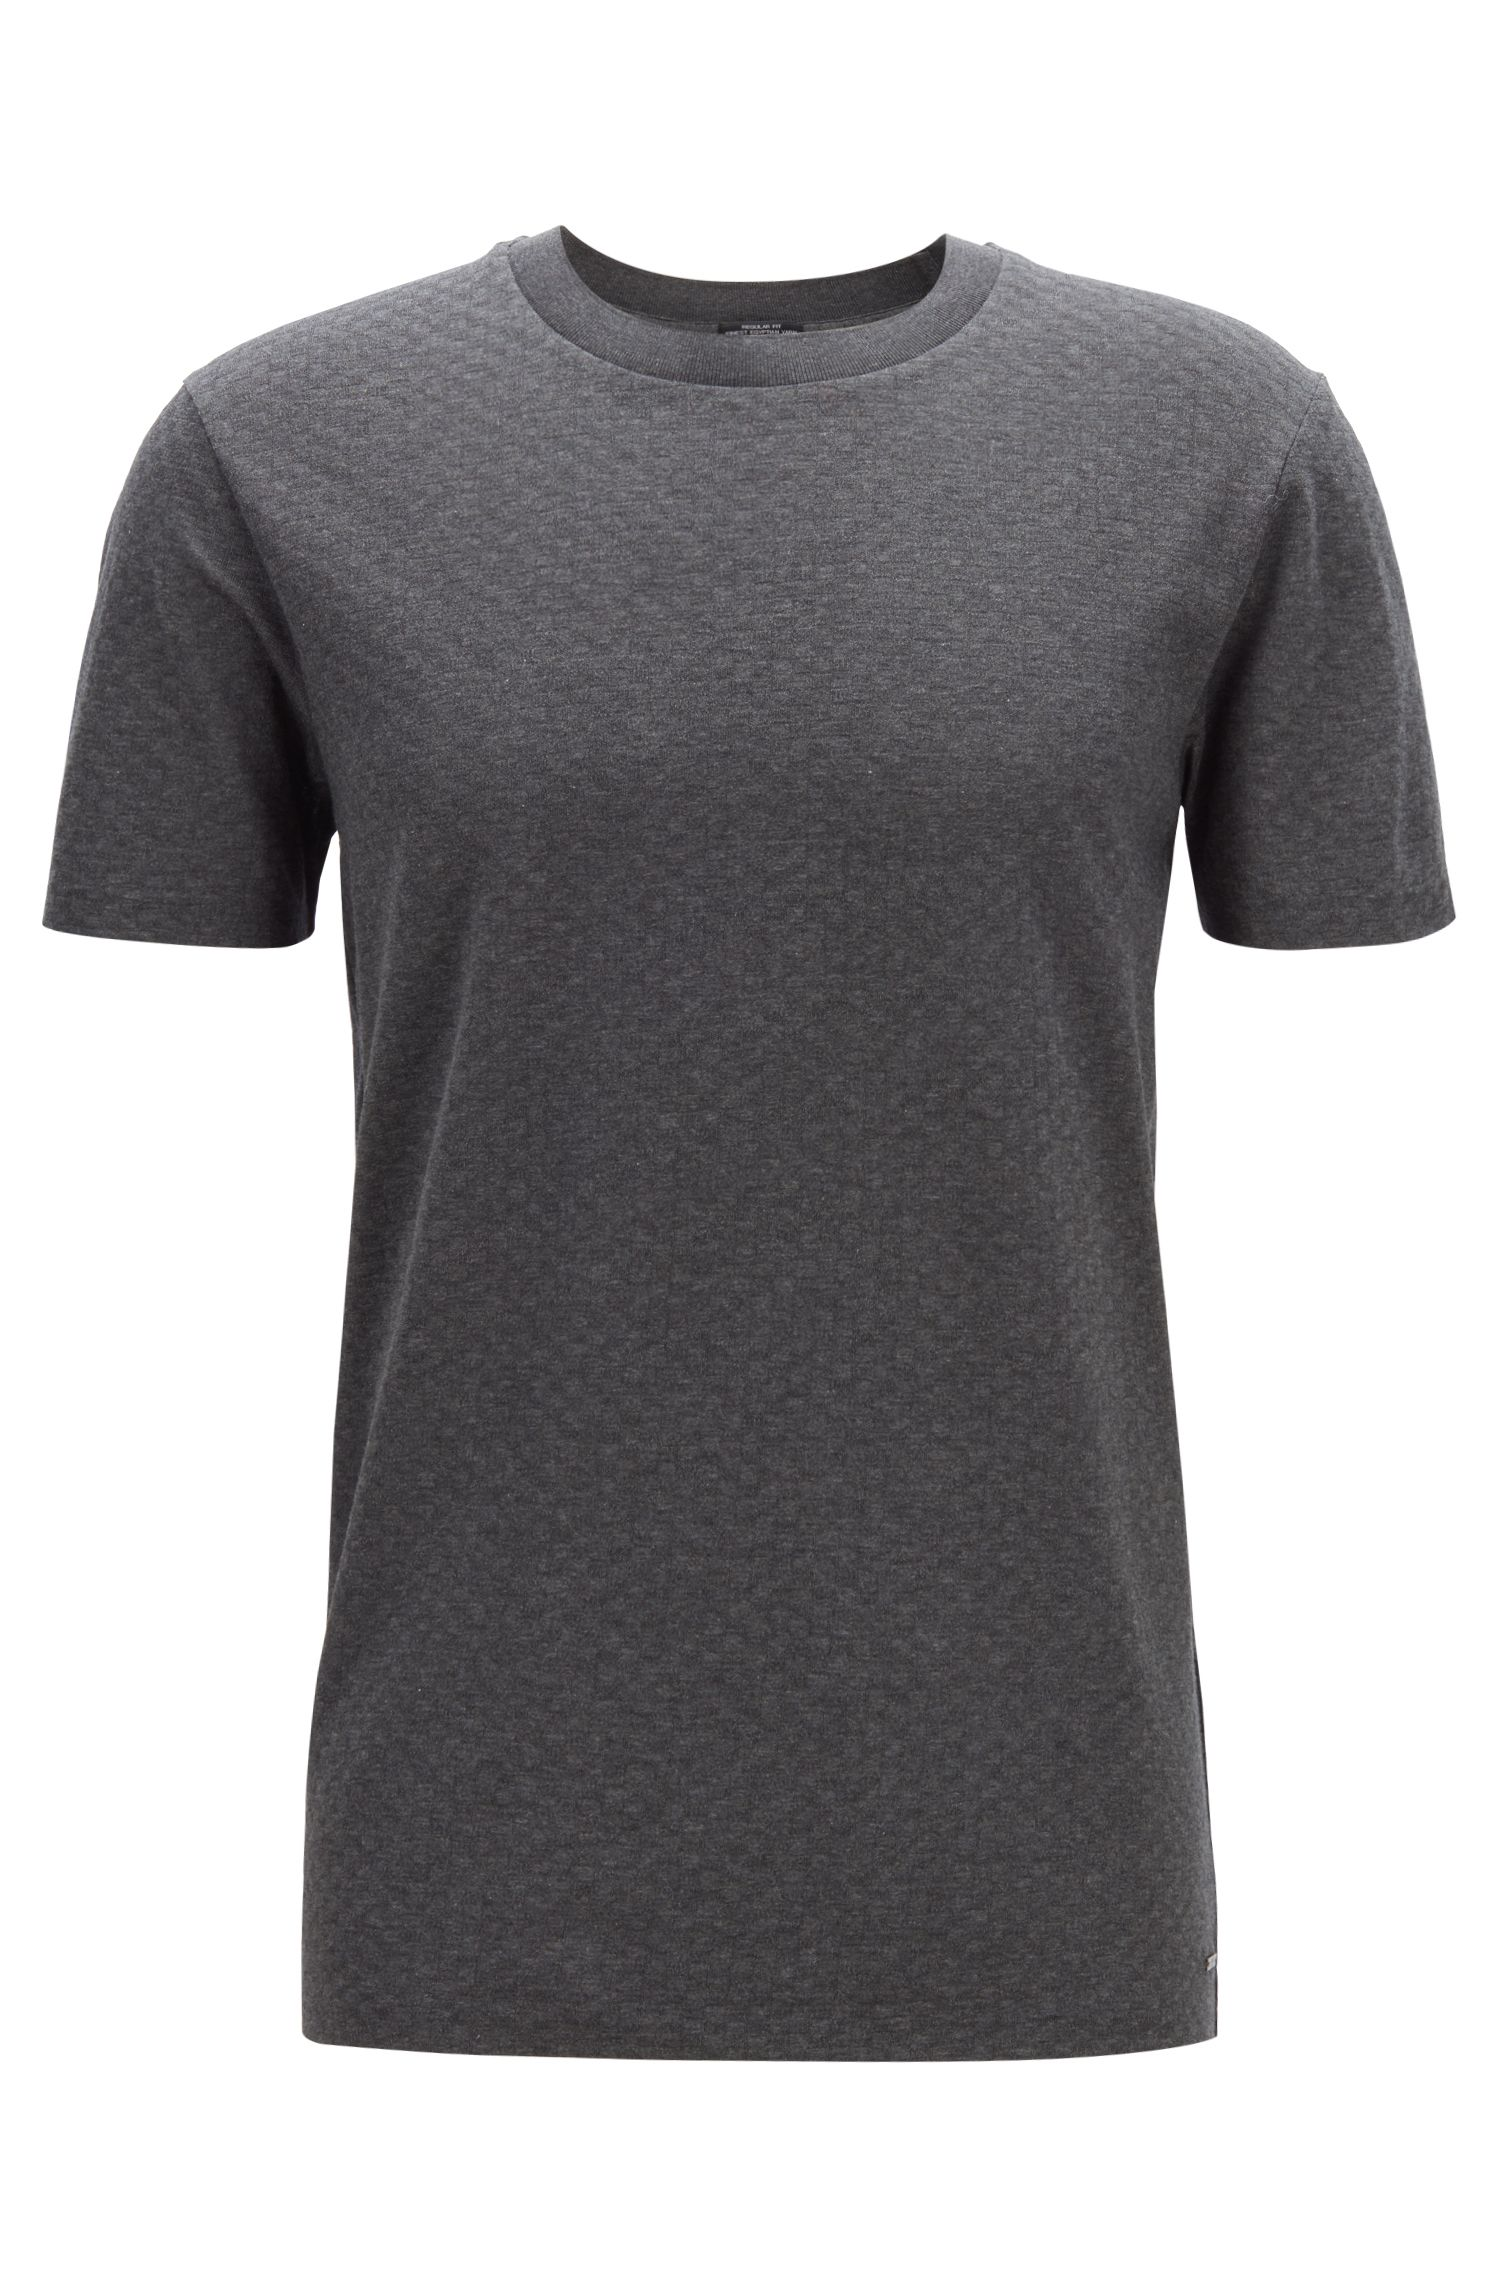 Regular-fit T-shirt in cotton with fine waffle structure, Grey